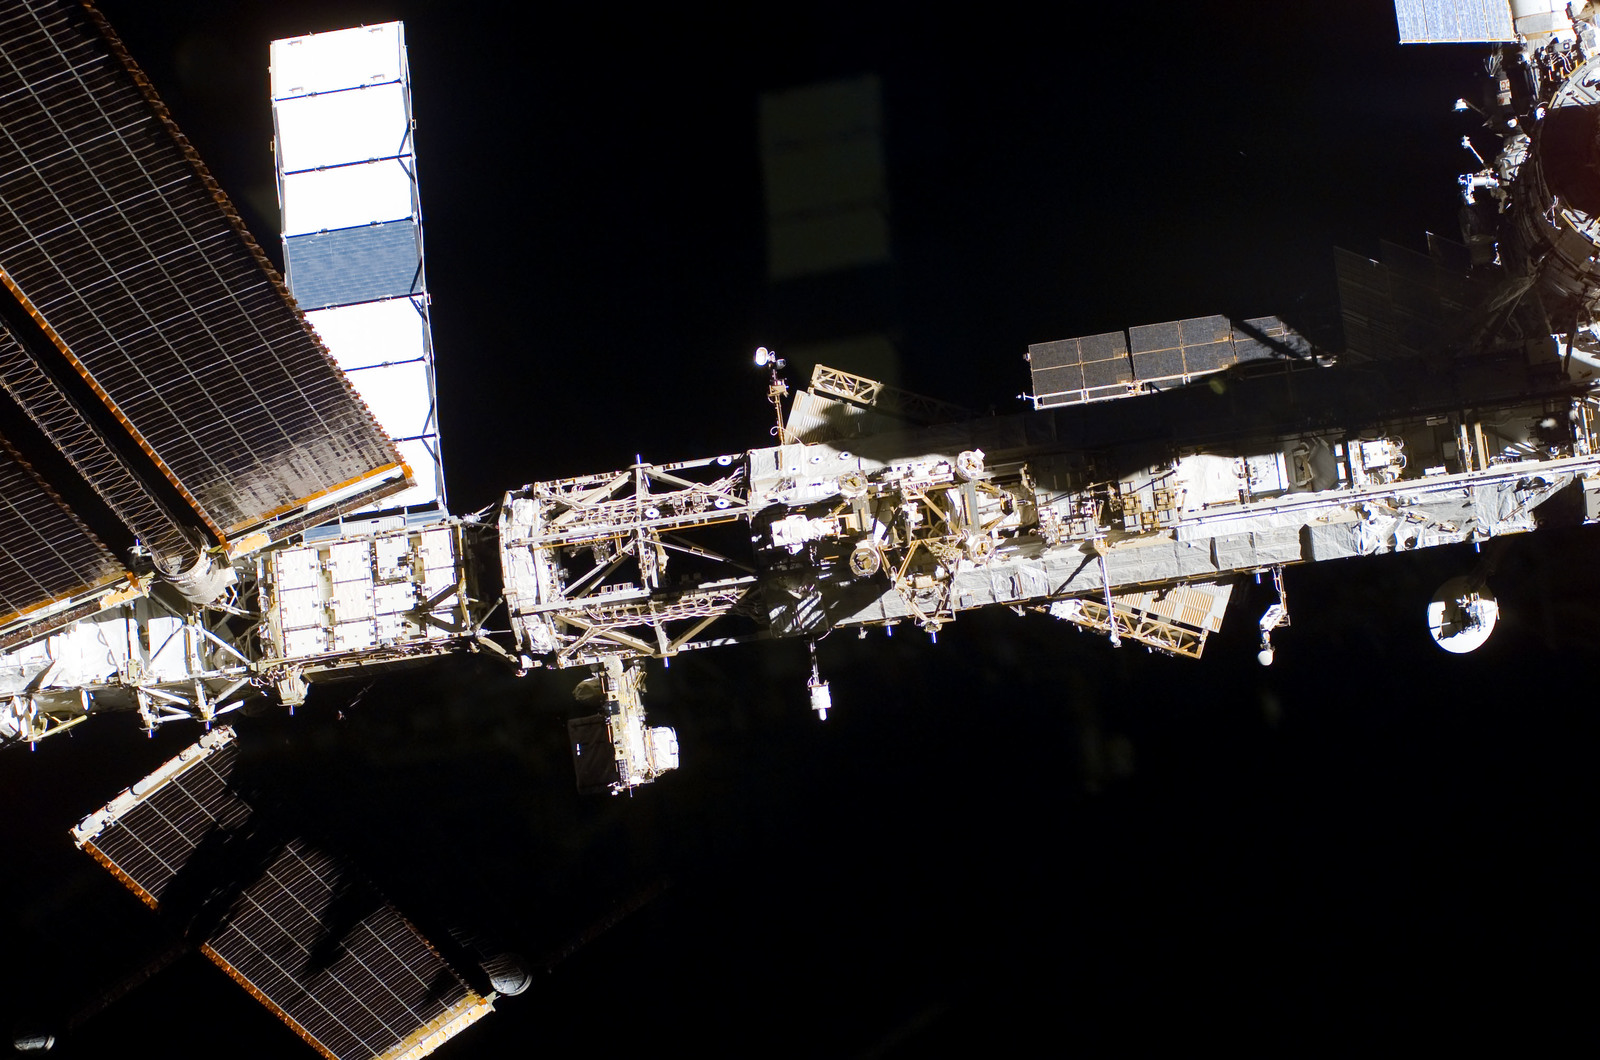 S122E009949 - STS-122 - Flyaround view of ISS after STS-122 Undocking